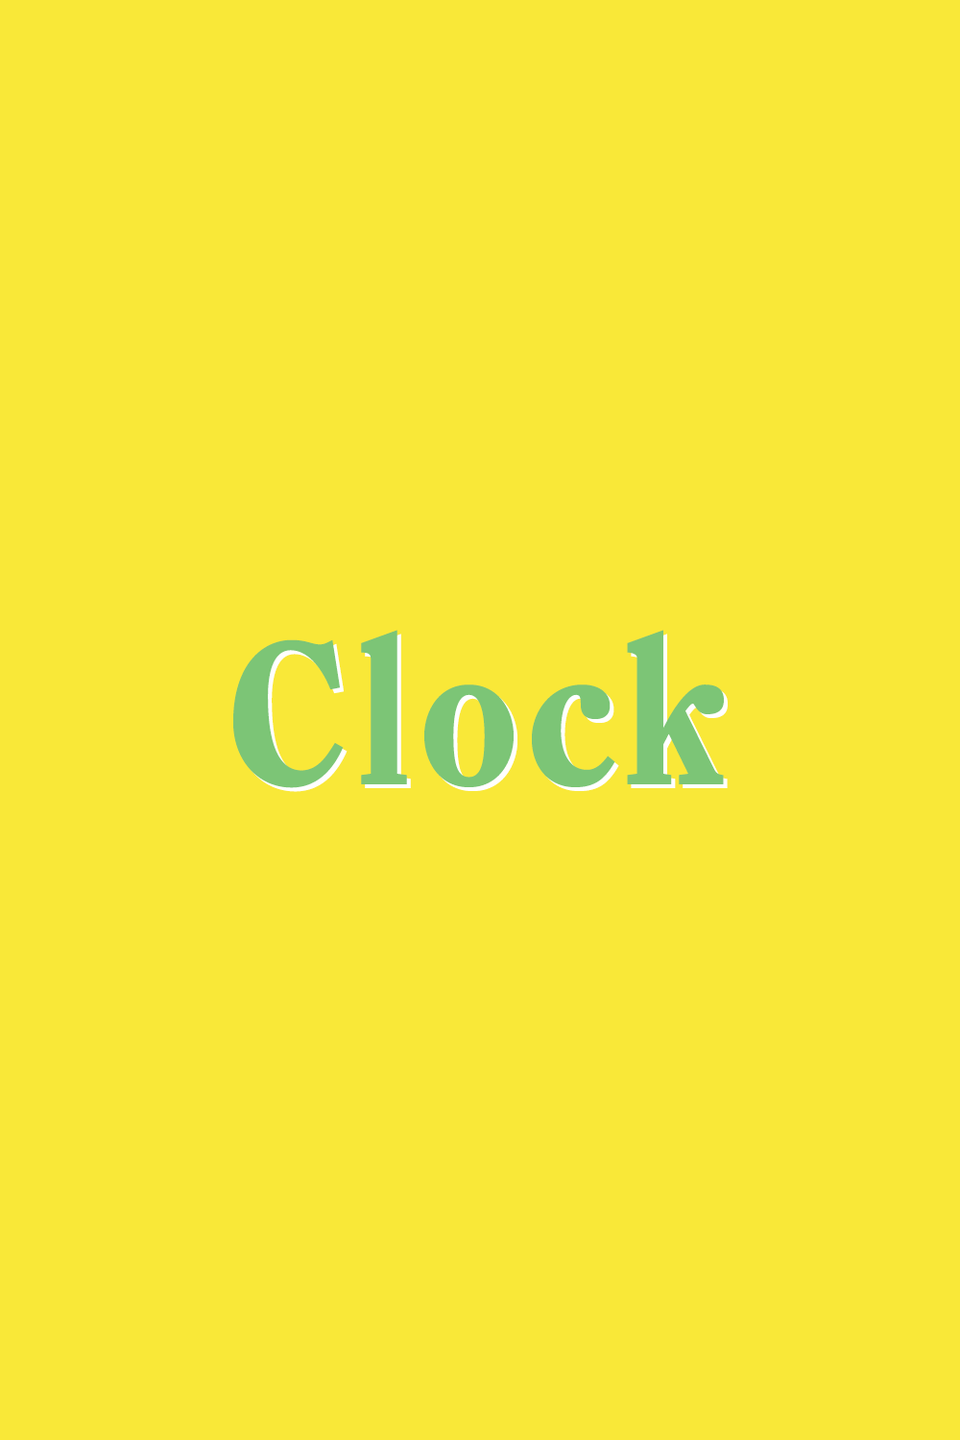 "<p>No, this has nothing to do with time. As Merriam-Webster defines the verb, to clock is to ""<a href=""https://www.merriam-webster.com/dictionary/clock"" rel=""nofollow noopener"" target=""_blank"" data-ylk=""slk:hit hard"" class=""link rapid-noclick-resp"">hit hard</a>."" Therefore, if you clock, are clocking, or clocked, someone, you essentially strike them across the head with an insult. It's similar to a ""read,"" but slightly more aggro. The slang version derives from <a href=""https://www.oprahdaily.com/life/a23601818/queer-cultural-appropriation-definition/"" rel=""nofollow noopener"" target=""_blank"" data-ylk=""slk:ball culture"" class=""link rapid-noclick-resp"">ball culture</a>, too. </p>"